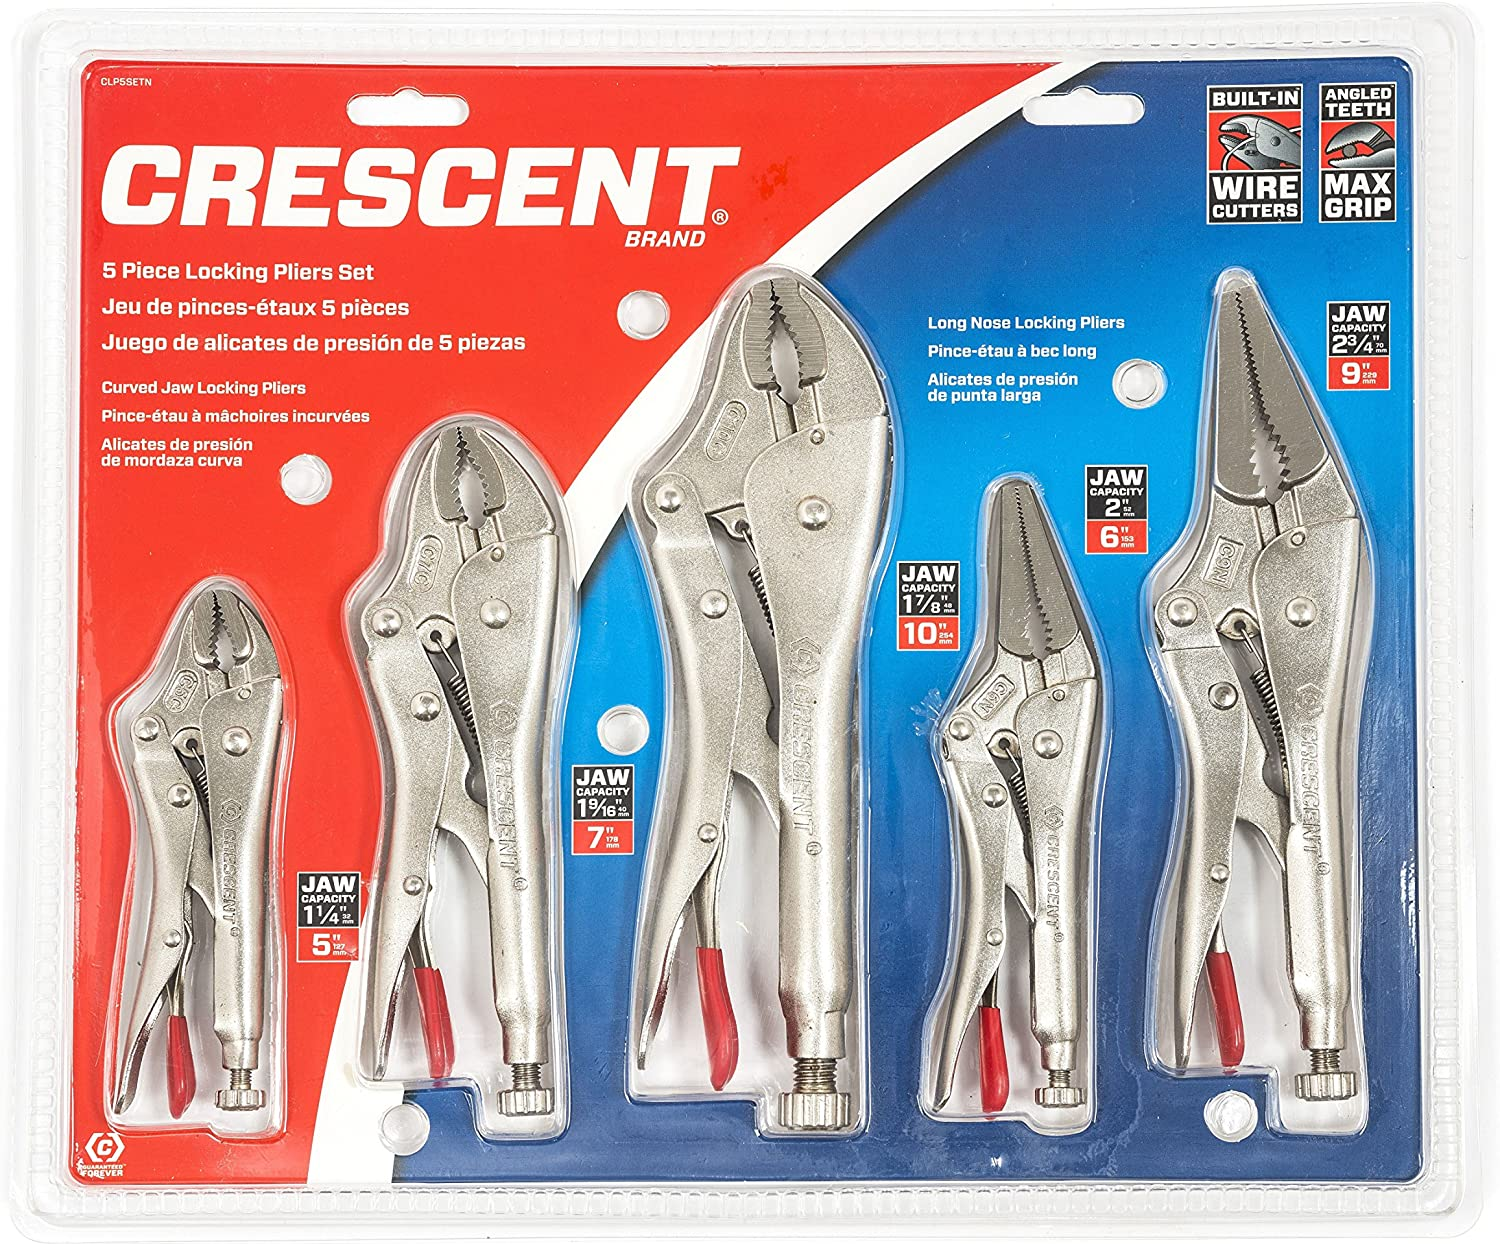 Crescent Five-Piece Locking Pliers Set with Wire Cutter